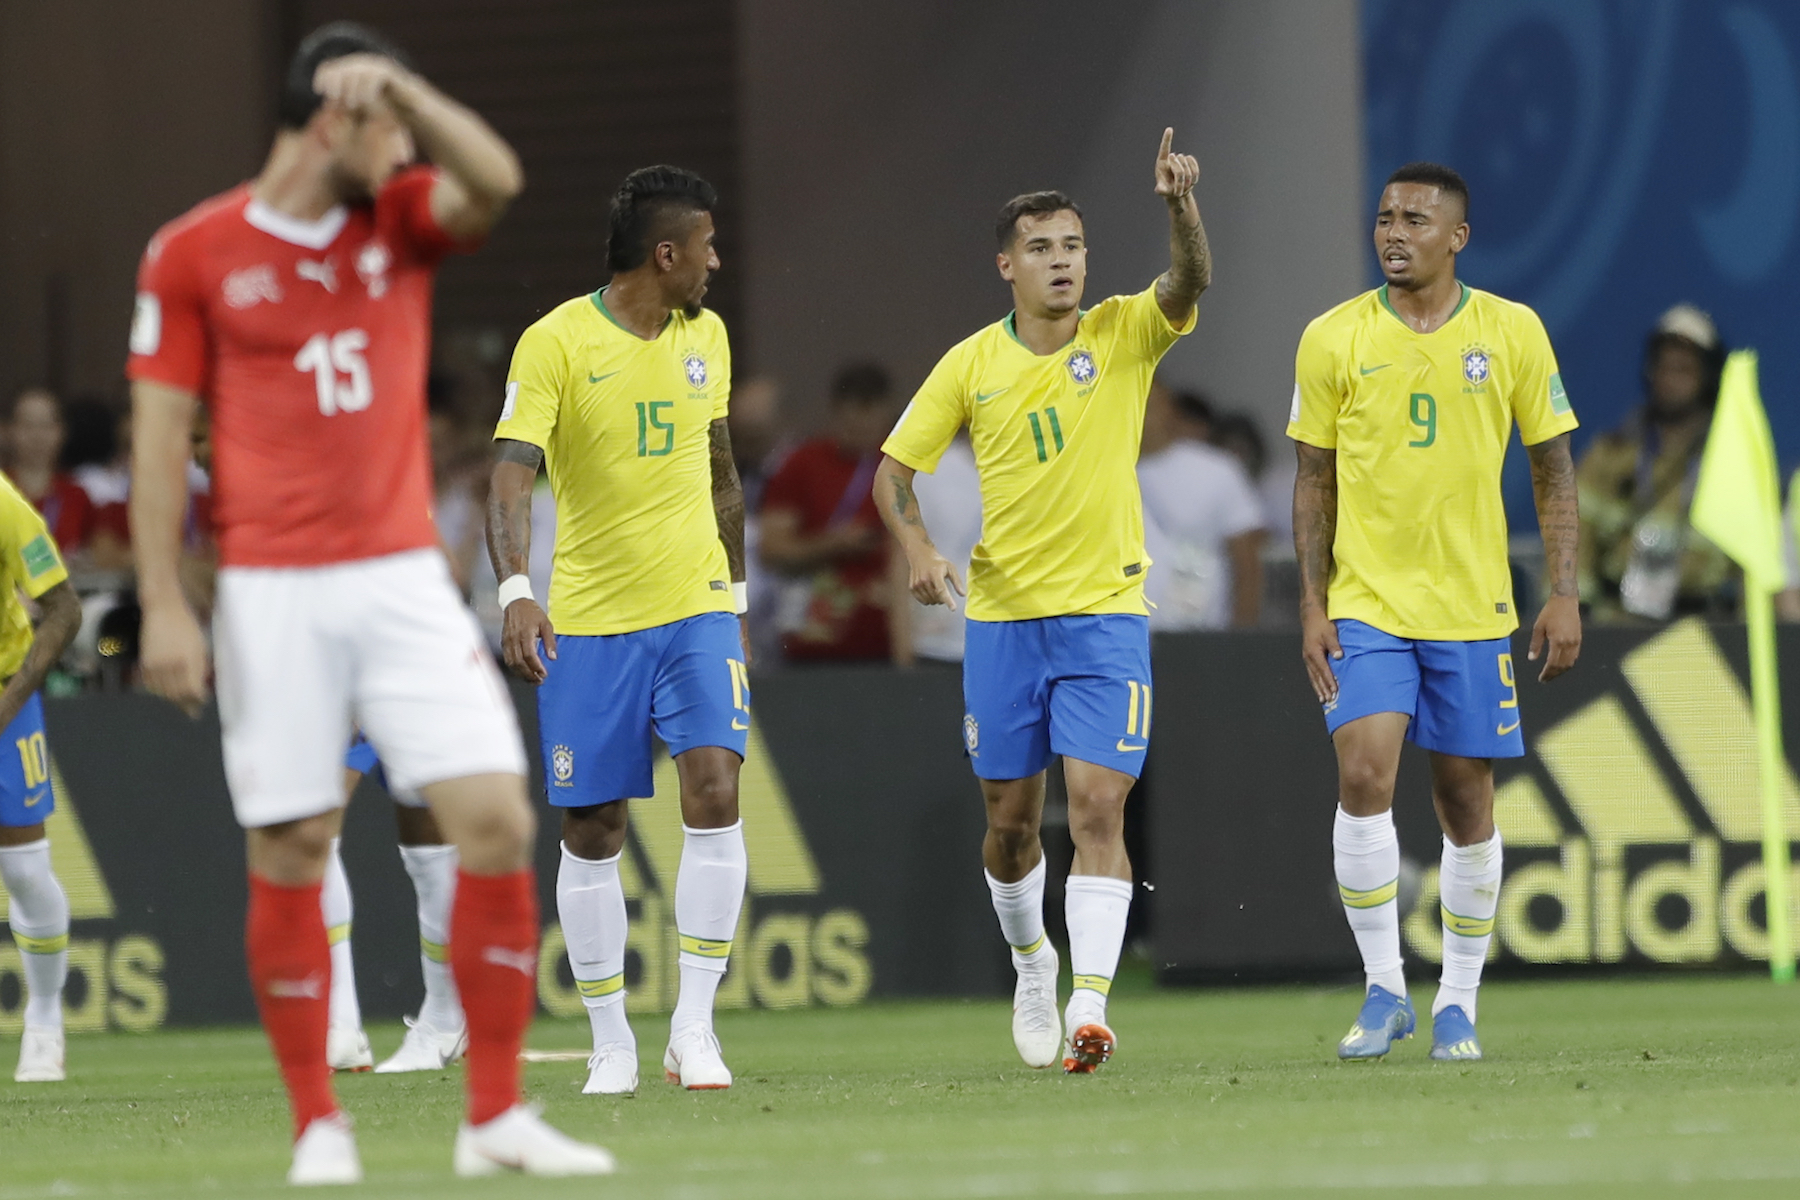 "<div class=""meta image-caption""><div class=""origin-logo origin-image ap""><span>AP</span></div><span class=""caption-text"">Brazil's Philippe Coutinho, second from right, celebrates scoring his side first goal against Switzerland during a group E match at the 2018 soccer World Cup in the Rostov Arena. (AP Photo/Andre Penner)</span></div>"